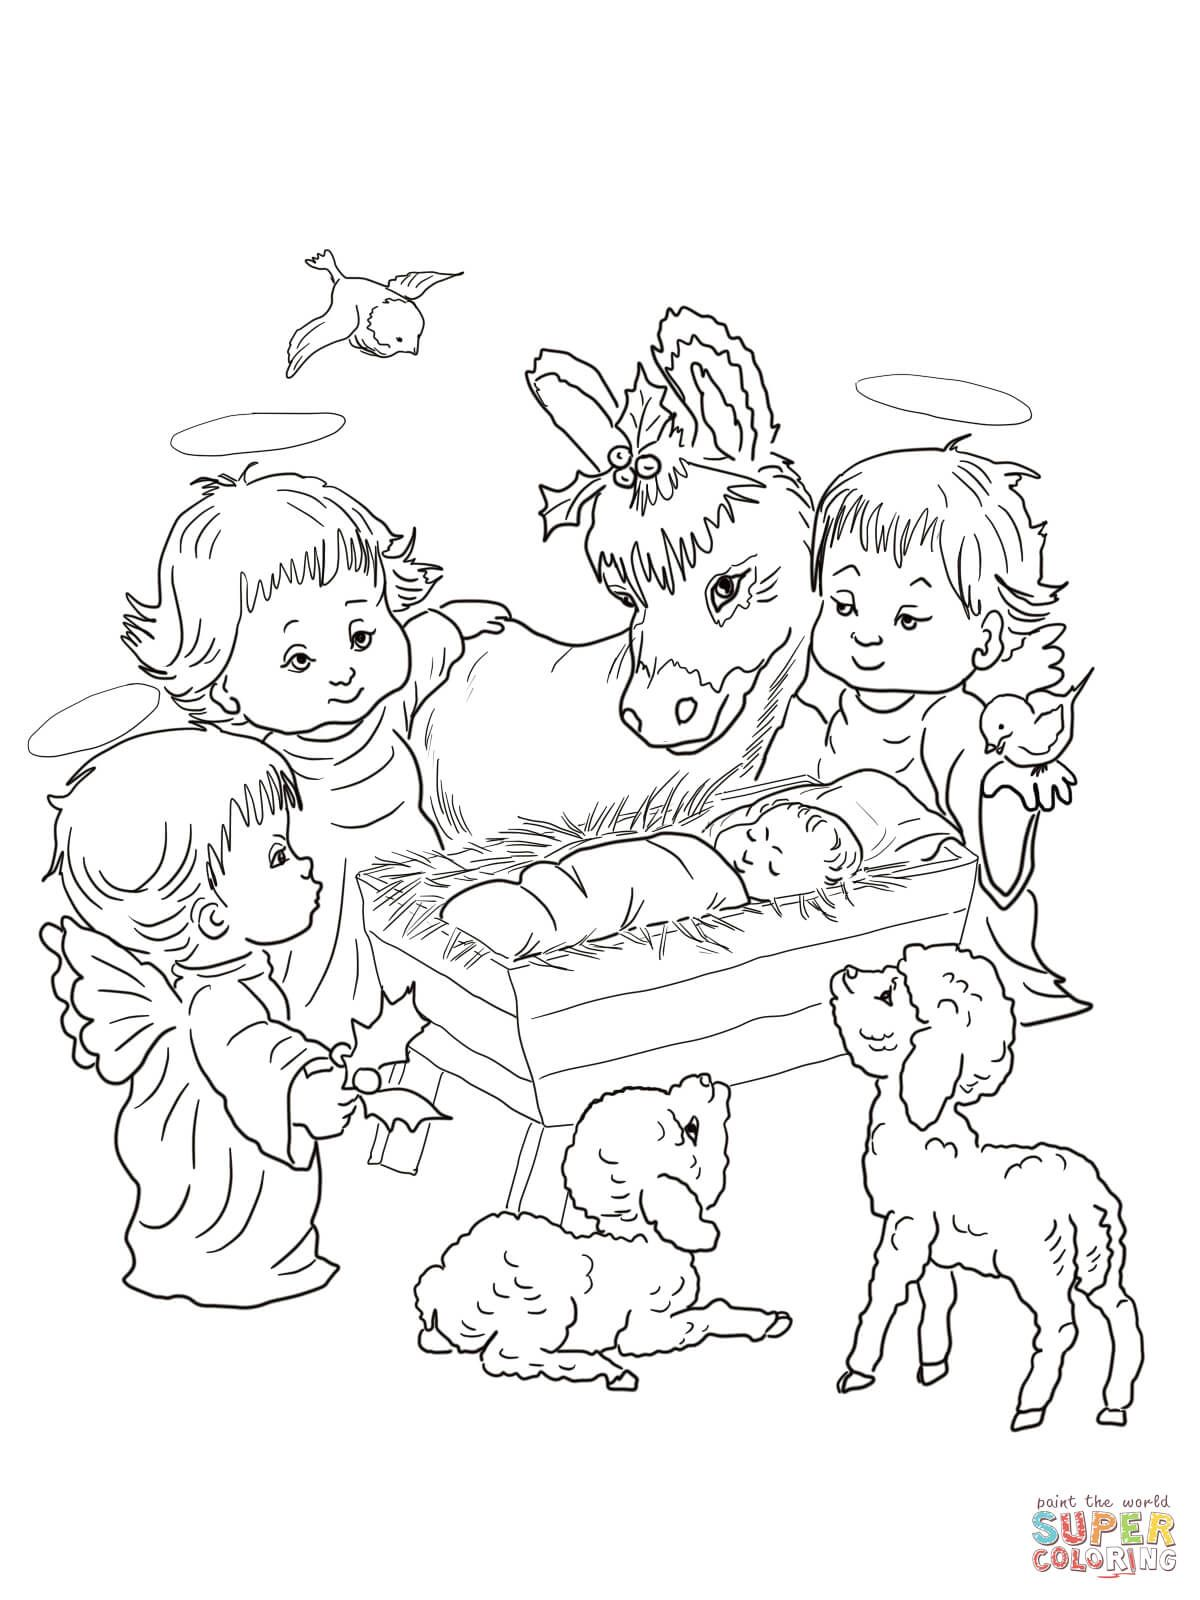 Nativity Scene With Cute Angels And Animals Coloring Page Free Printable Colorin Nativity Coloring Pages Angel Coloring Pages Precious Moments Coloring Pages